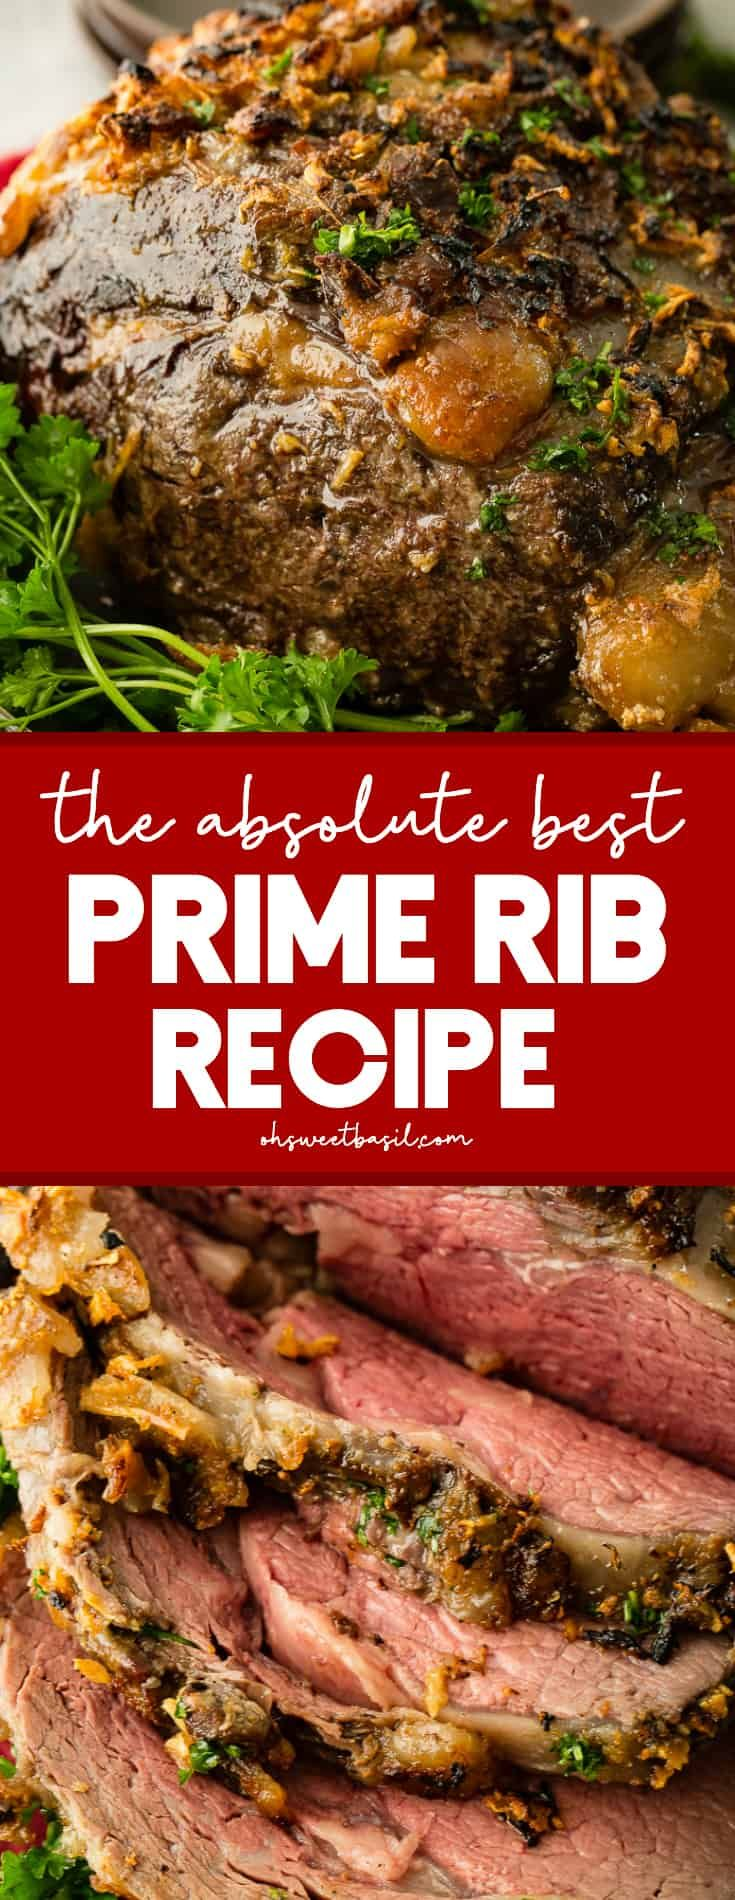 Every Year I Promise To Share The Absolute Best Prime Rib Recipe And Every Year I Forget To Take Pictures T Prime Rib Recipe Rib Recipes Best Prime Rib Recipe